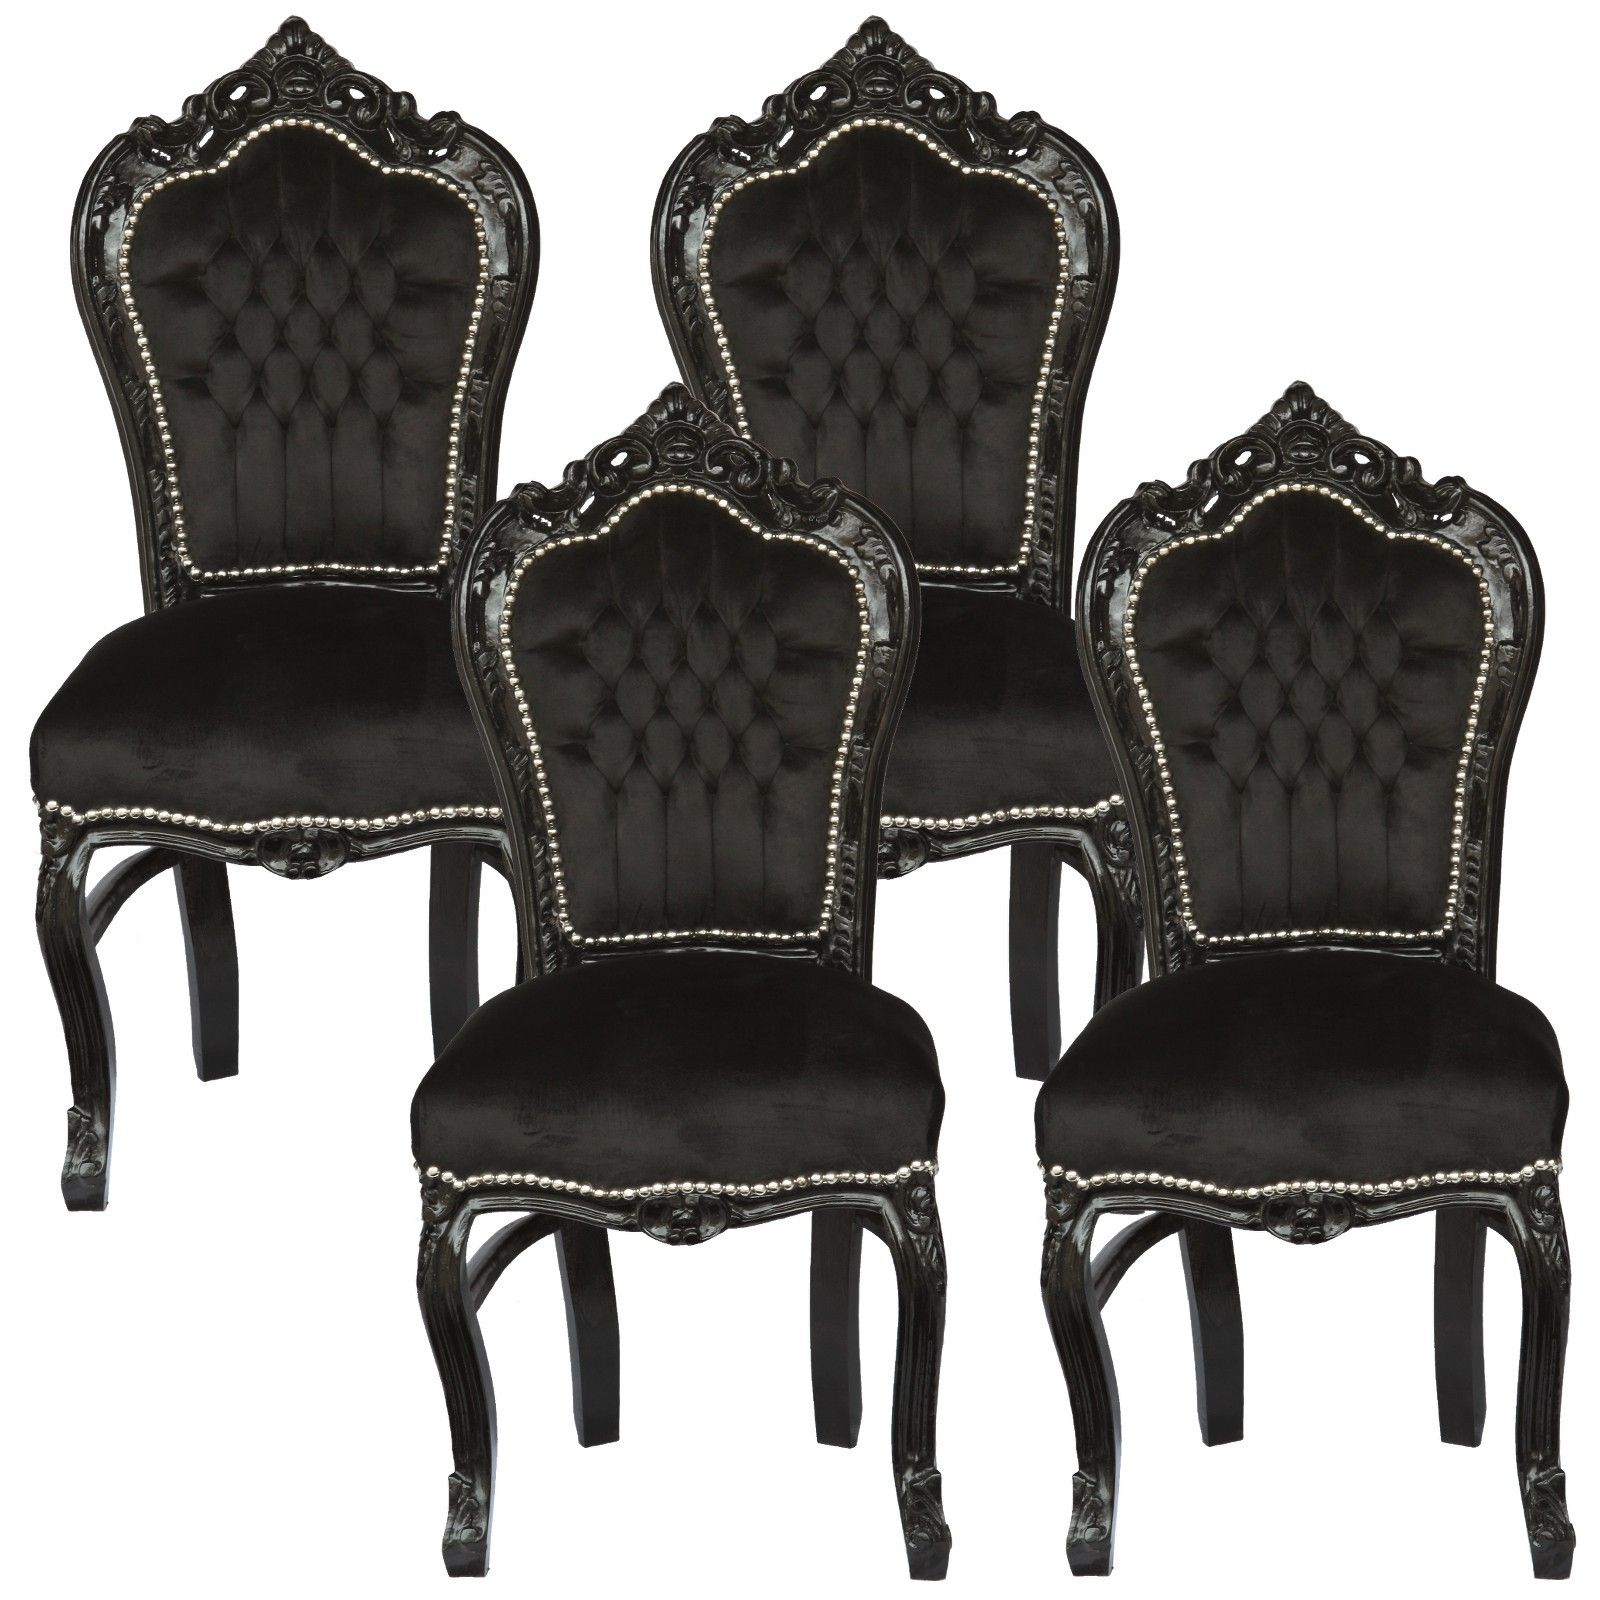 medieval dining chairs korum fishing chair wheel kit amazing set of 4 room baroque gothic black